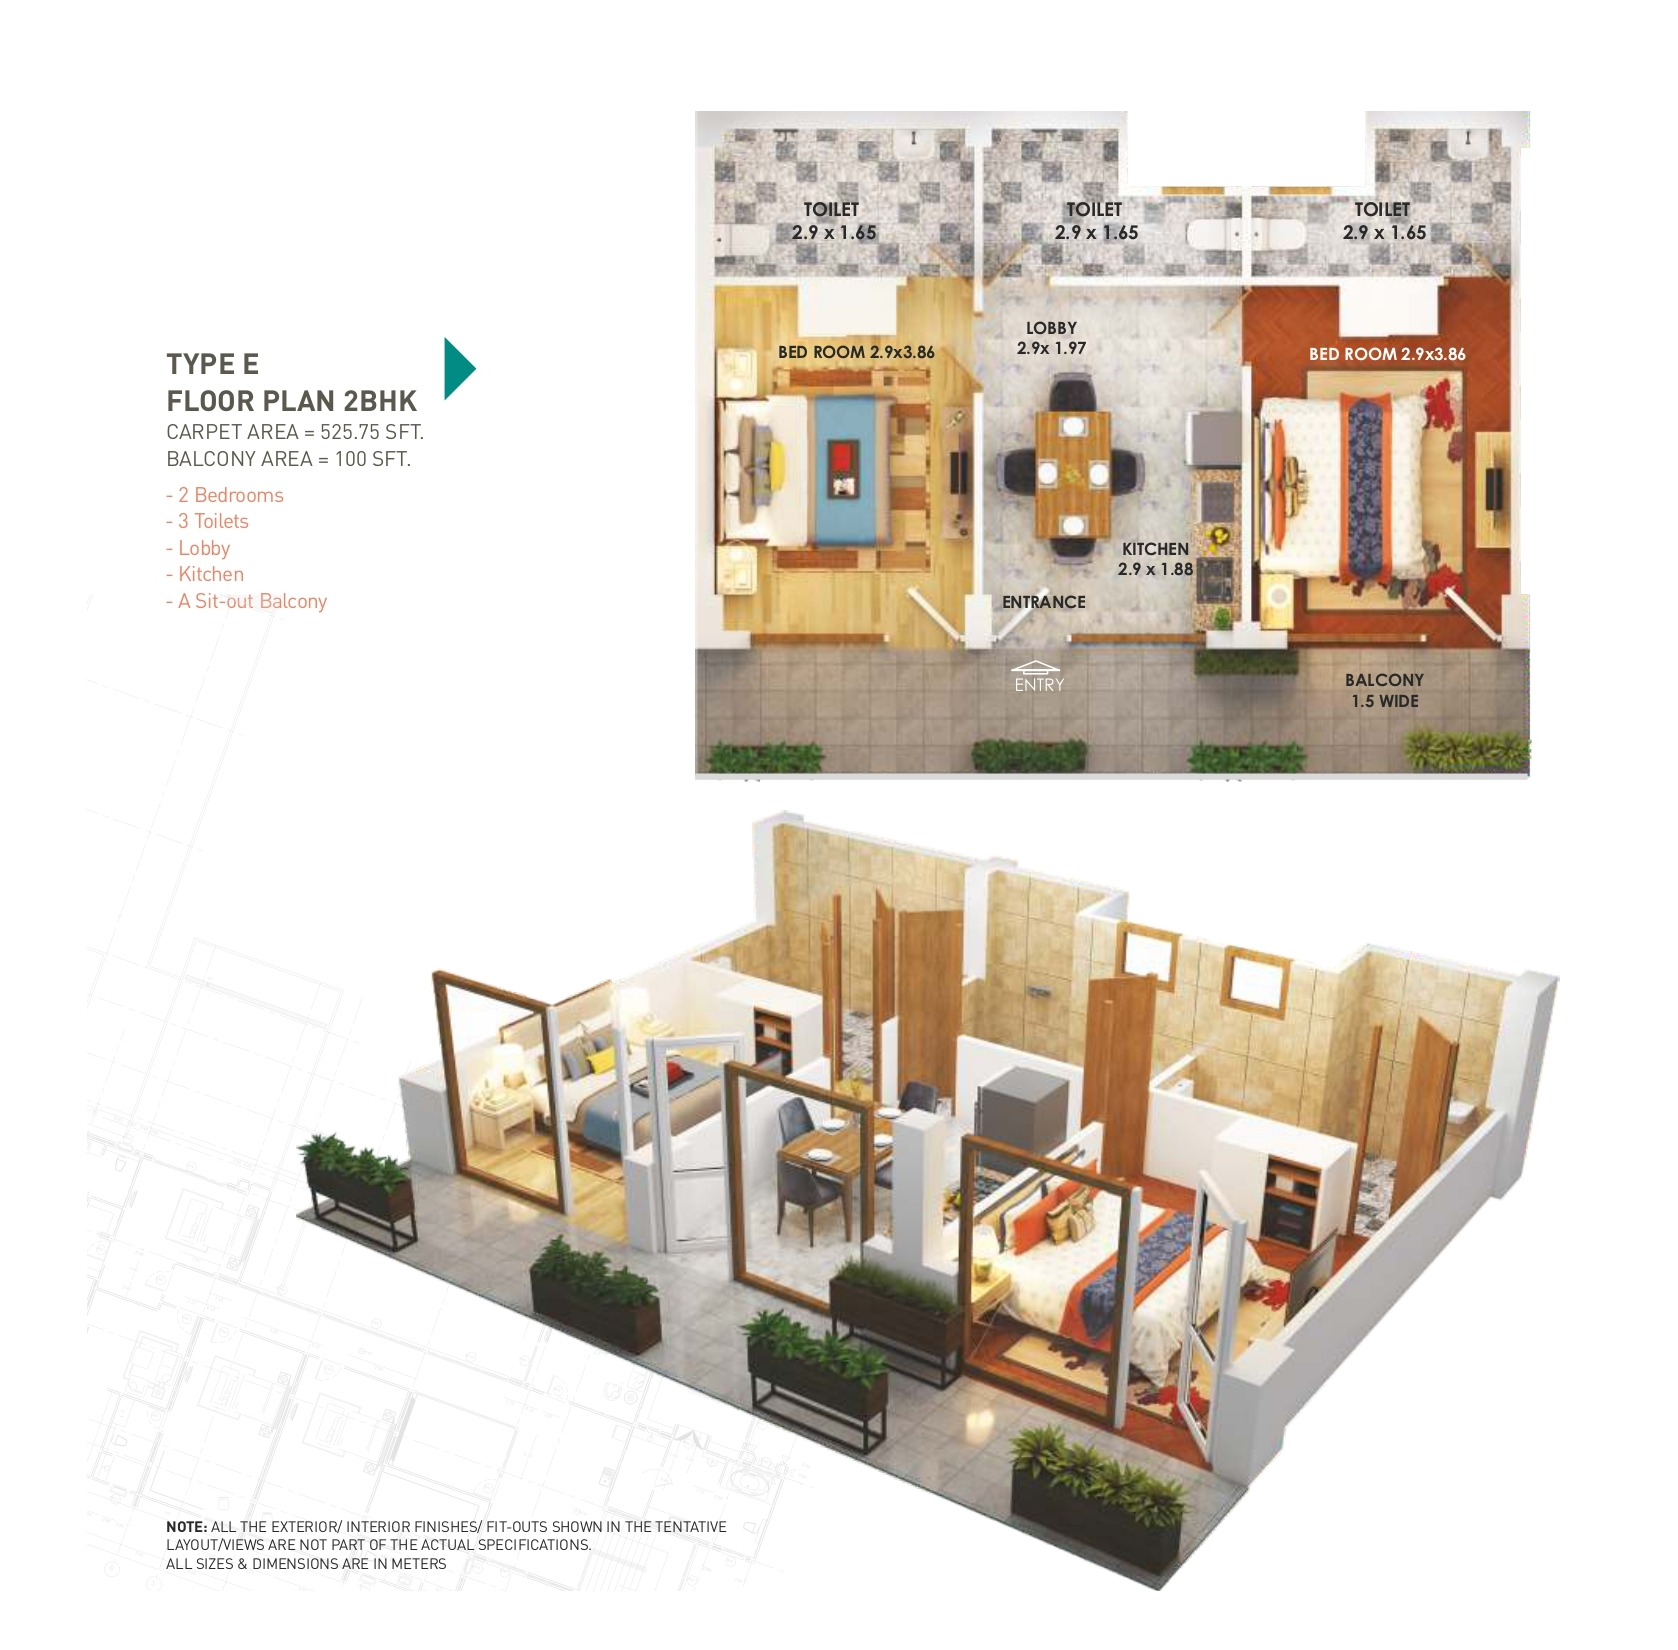 Pyramid Heights 2BHK Type E